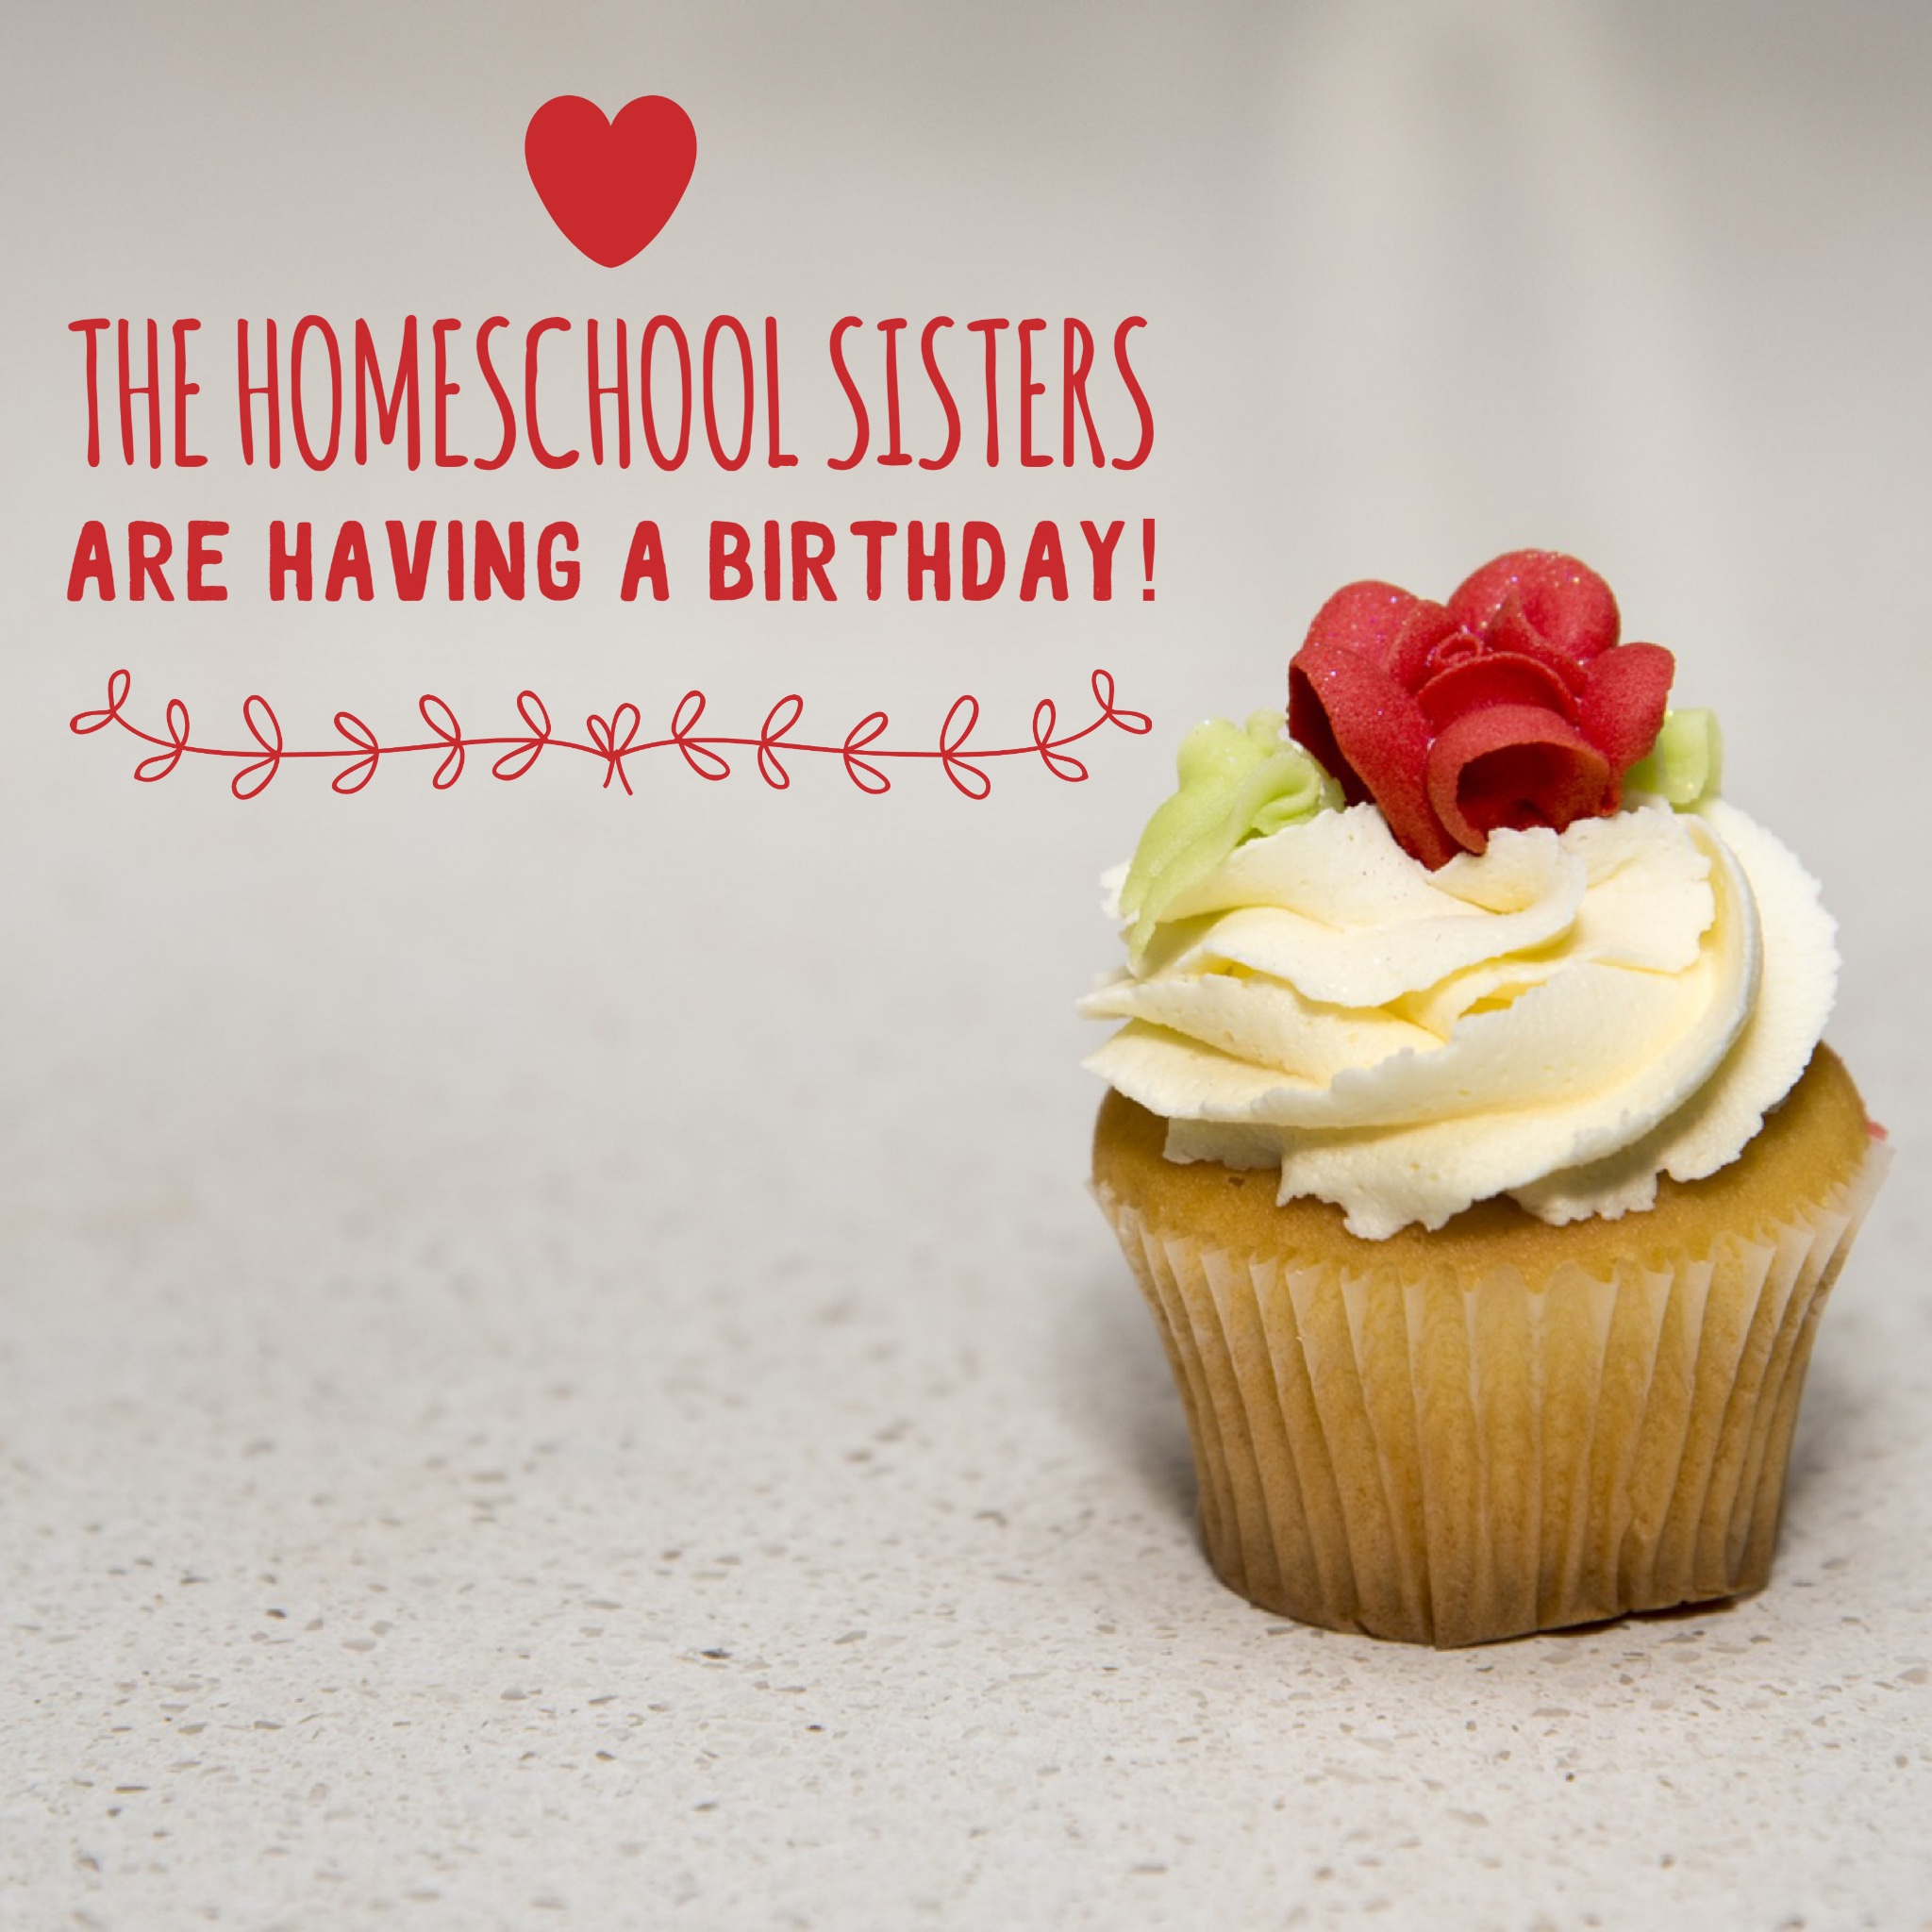 The Homeschool Sisters are Having a Birthday!